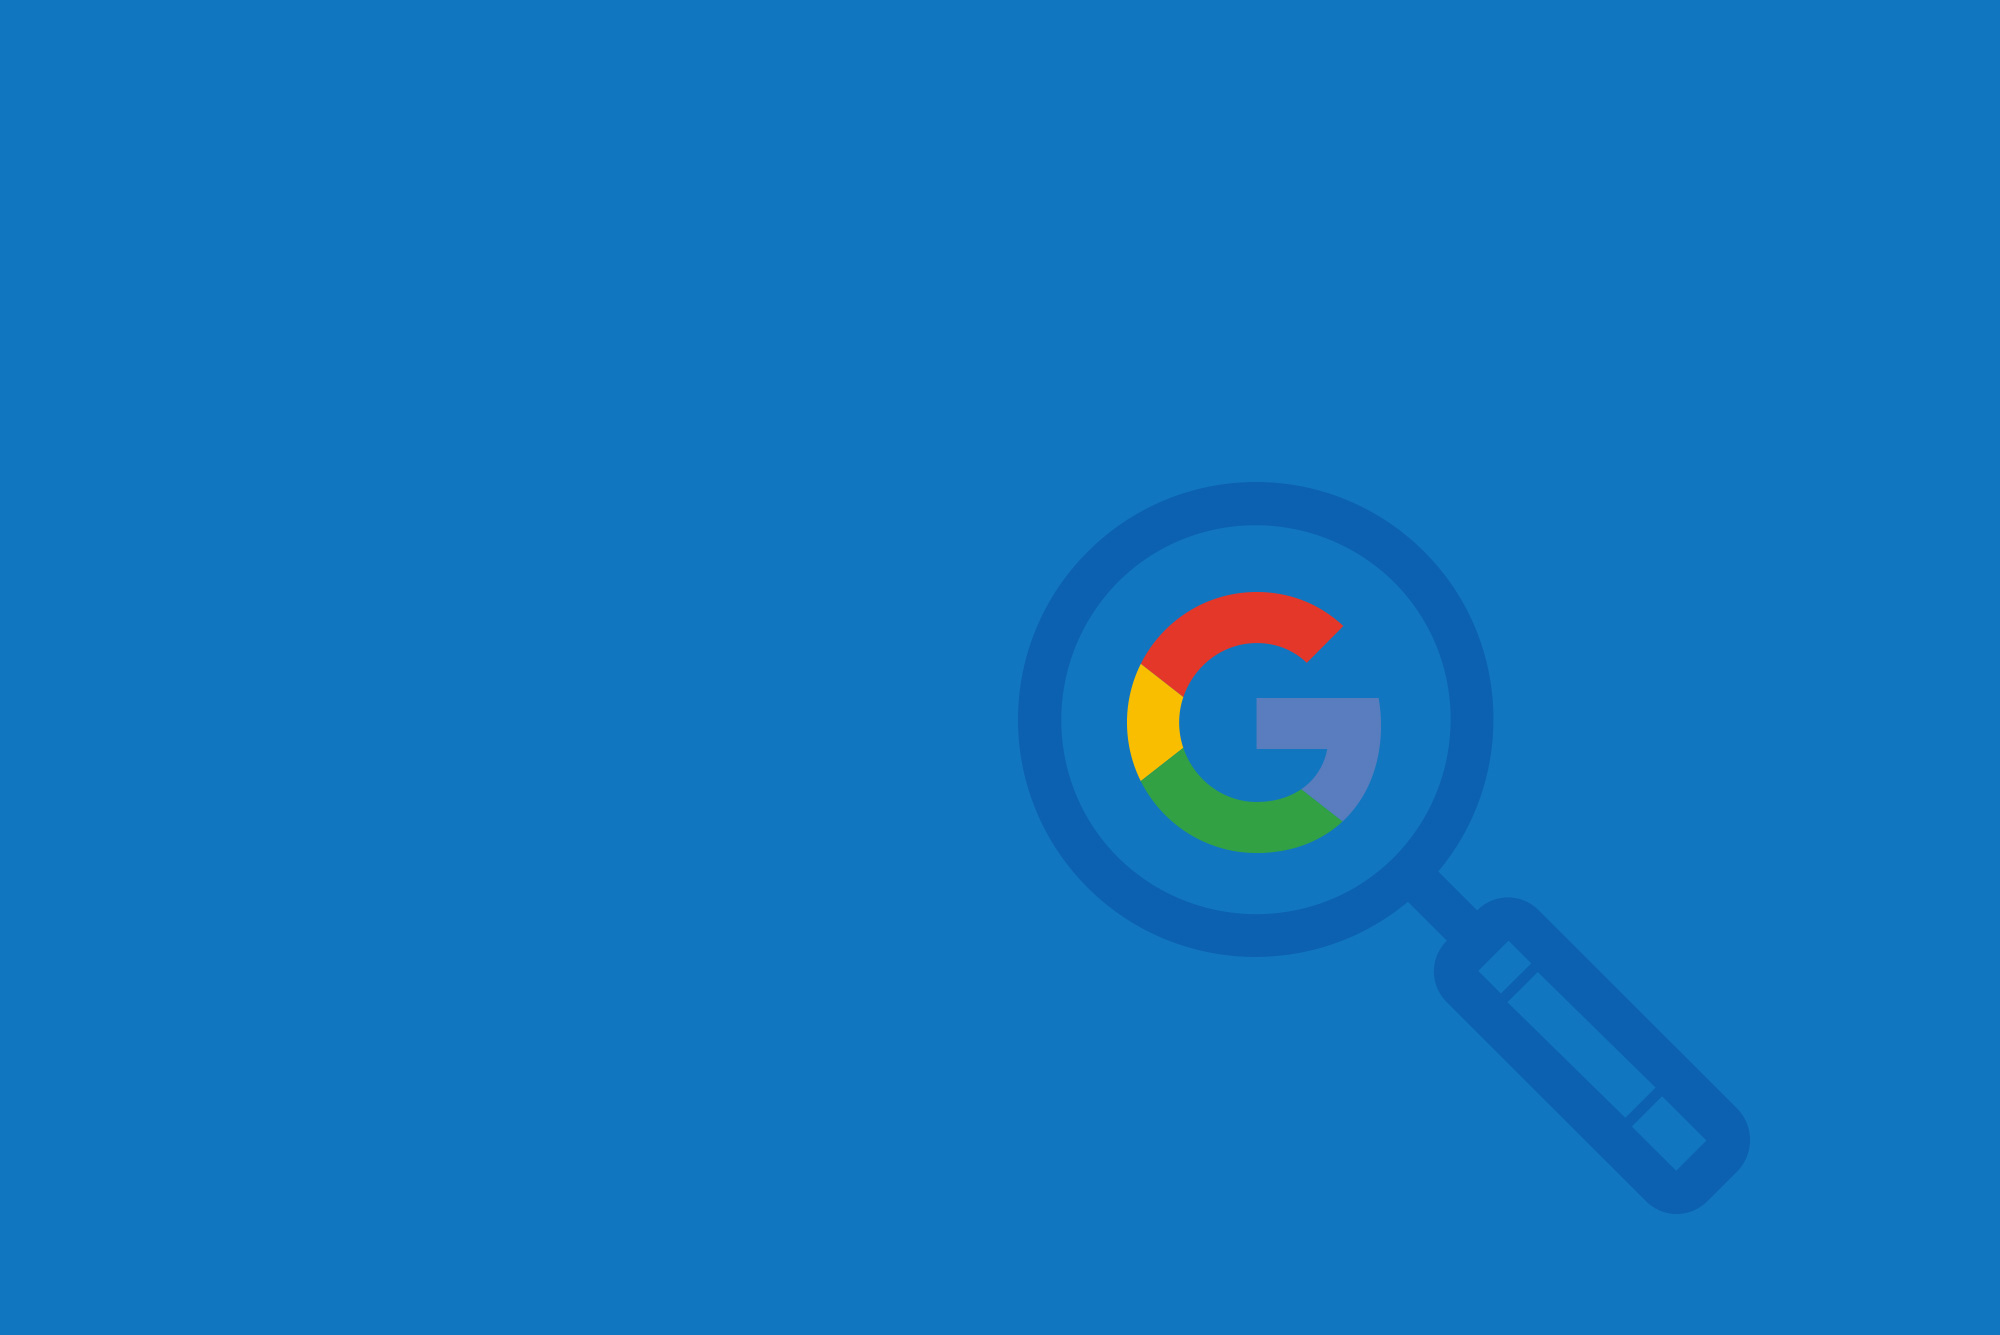 Magnifying glass over the Google logo on blue background